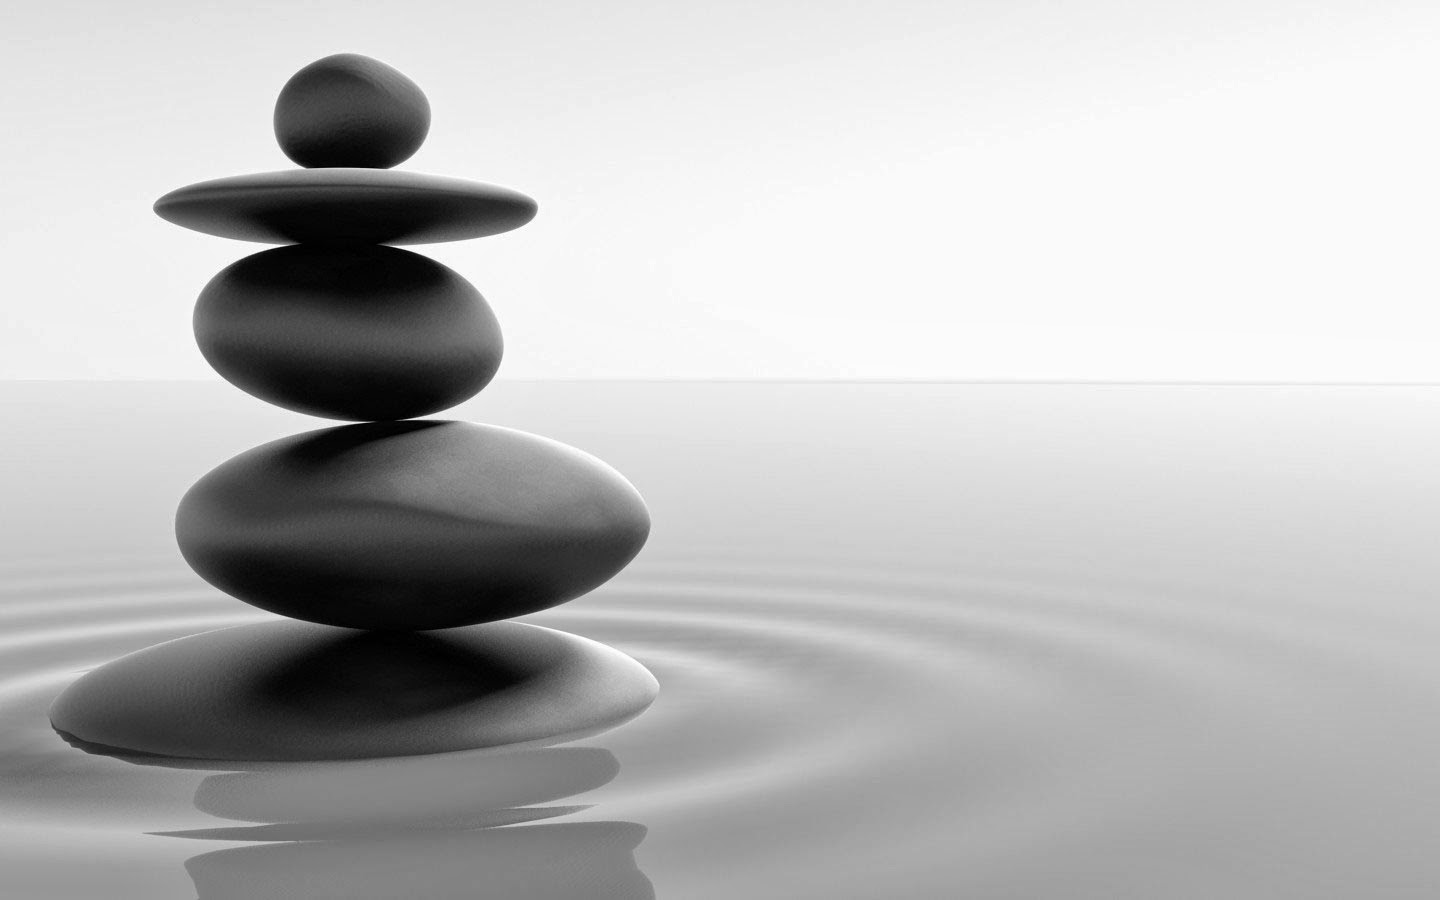 Meditation Wallpaper Zen Meditation Wallpaper Meditation Pictures 1440x900